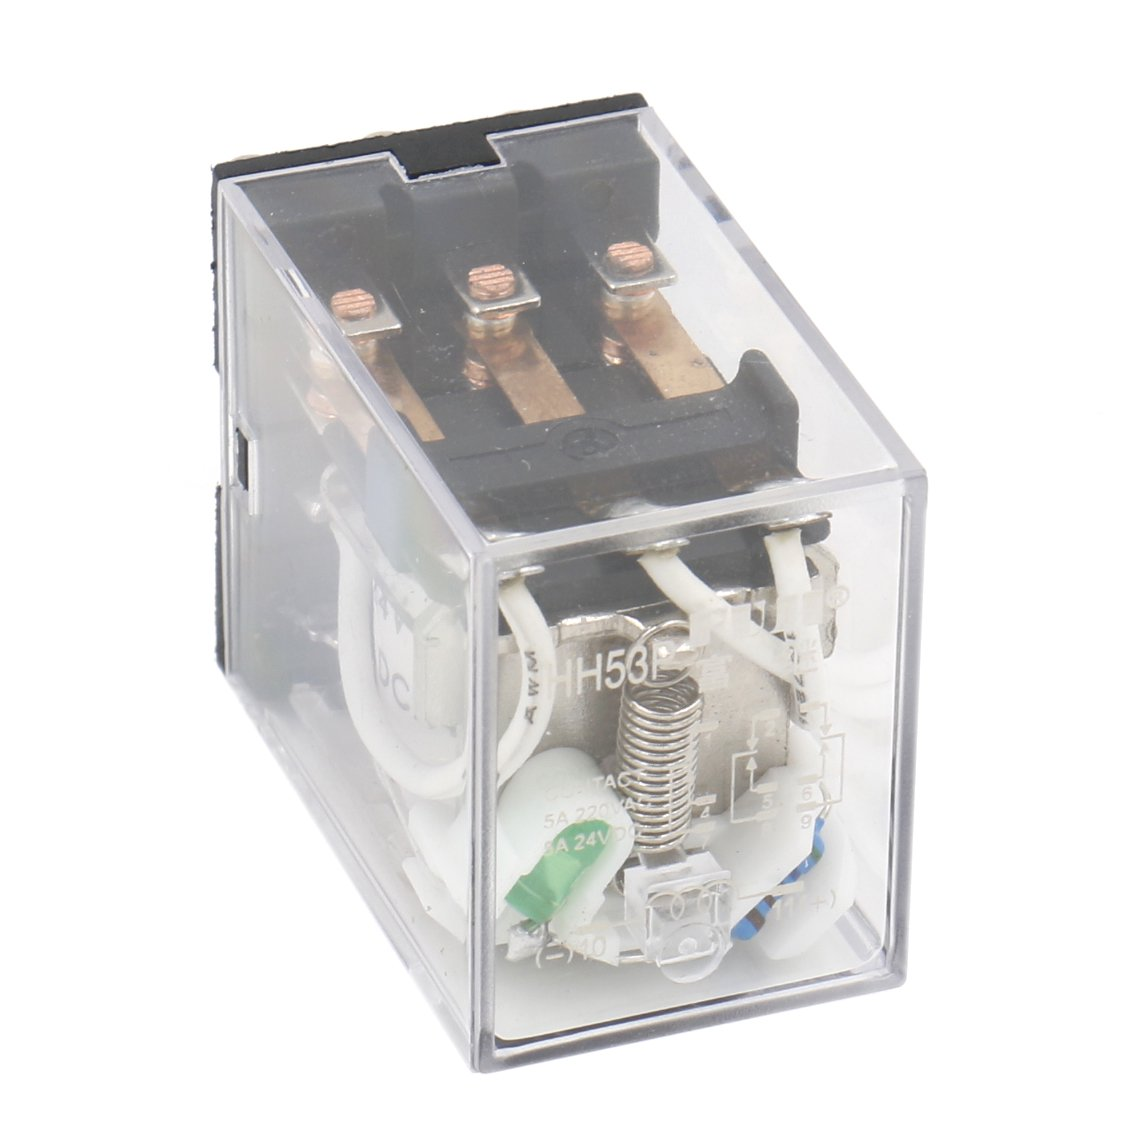 Heschen Gereral Purpose Power Relay HH53P-L 24VDC Coil 5A 220VAC/24VDC 3PDT 11 Pin Terminals LED Indicator